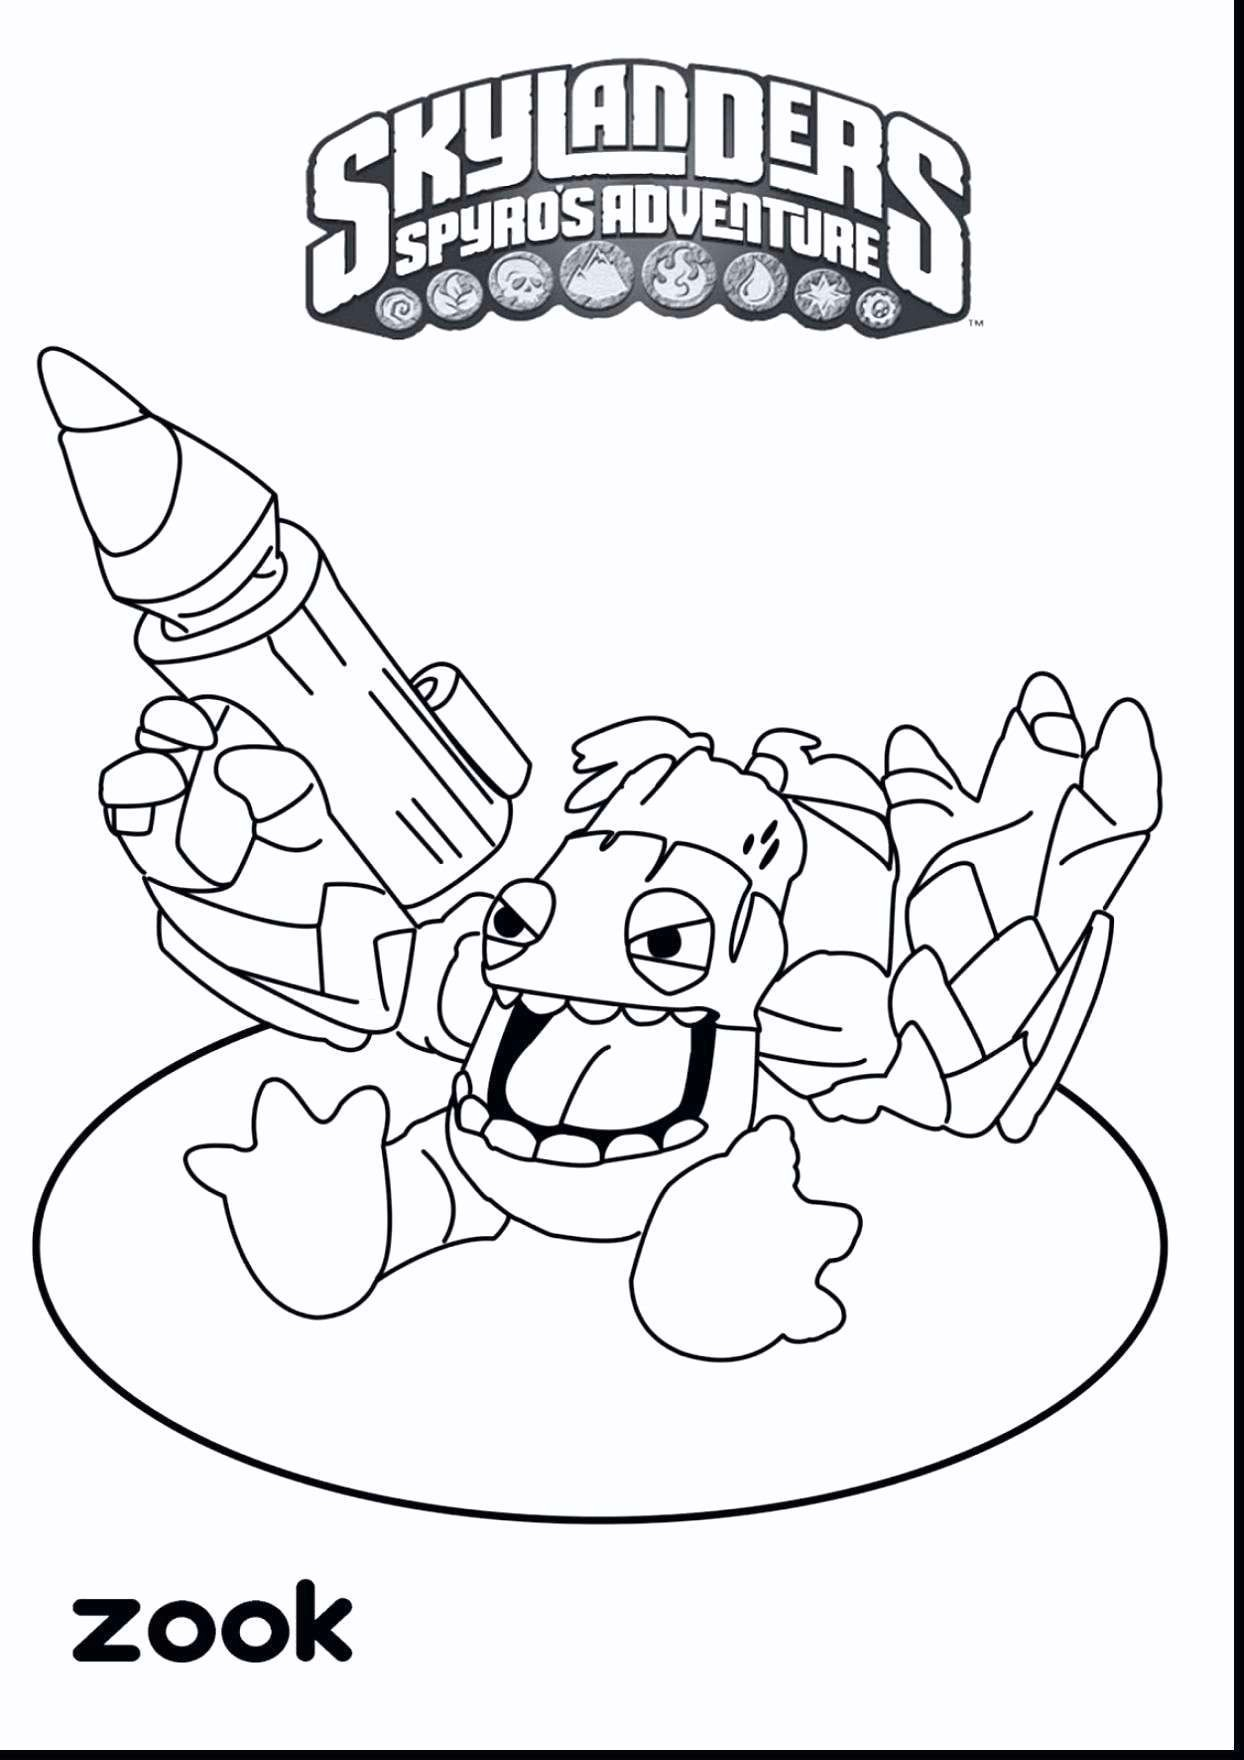 Acorn Coloring Pages  Printable 15n - Save it to your computer